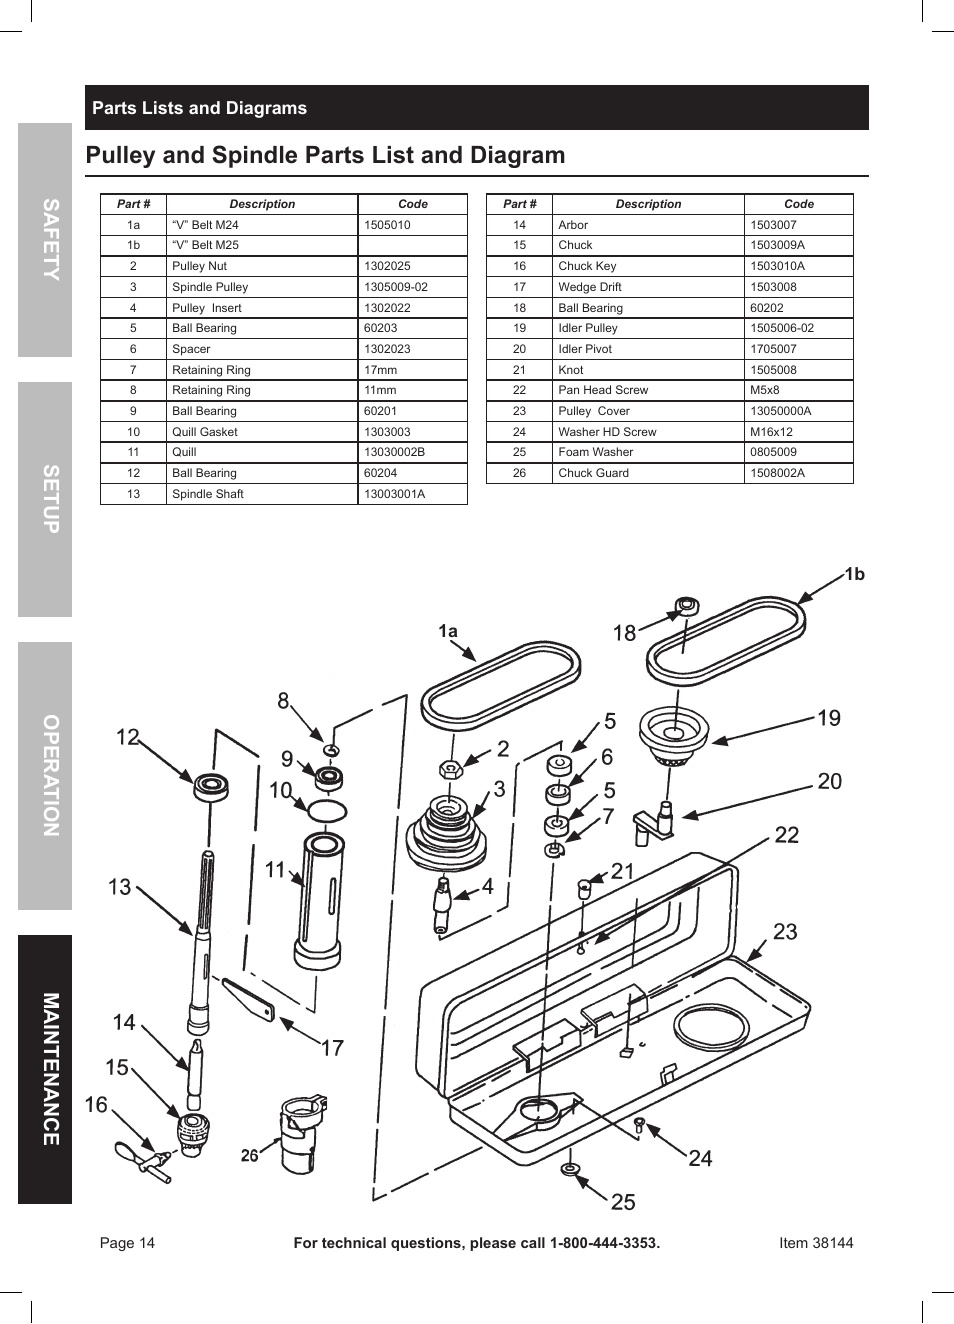 Pulley and spindle parts list and diagram, Safety opera